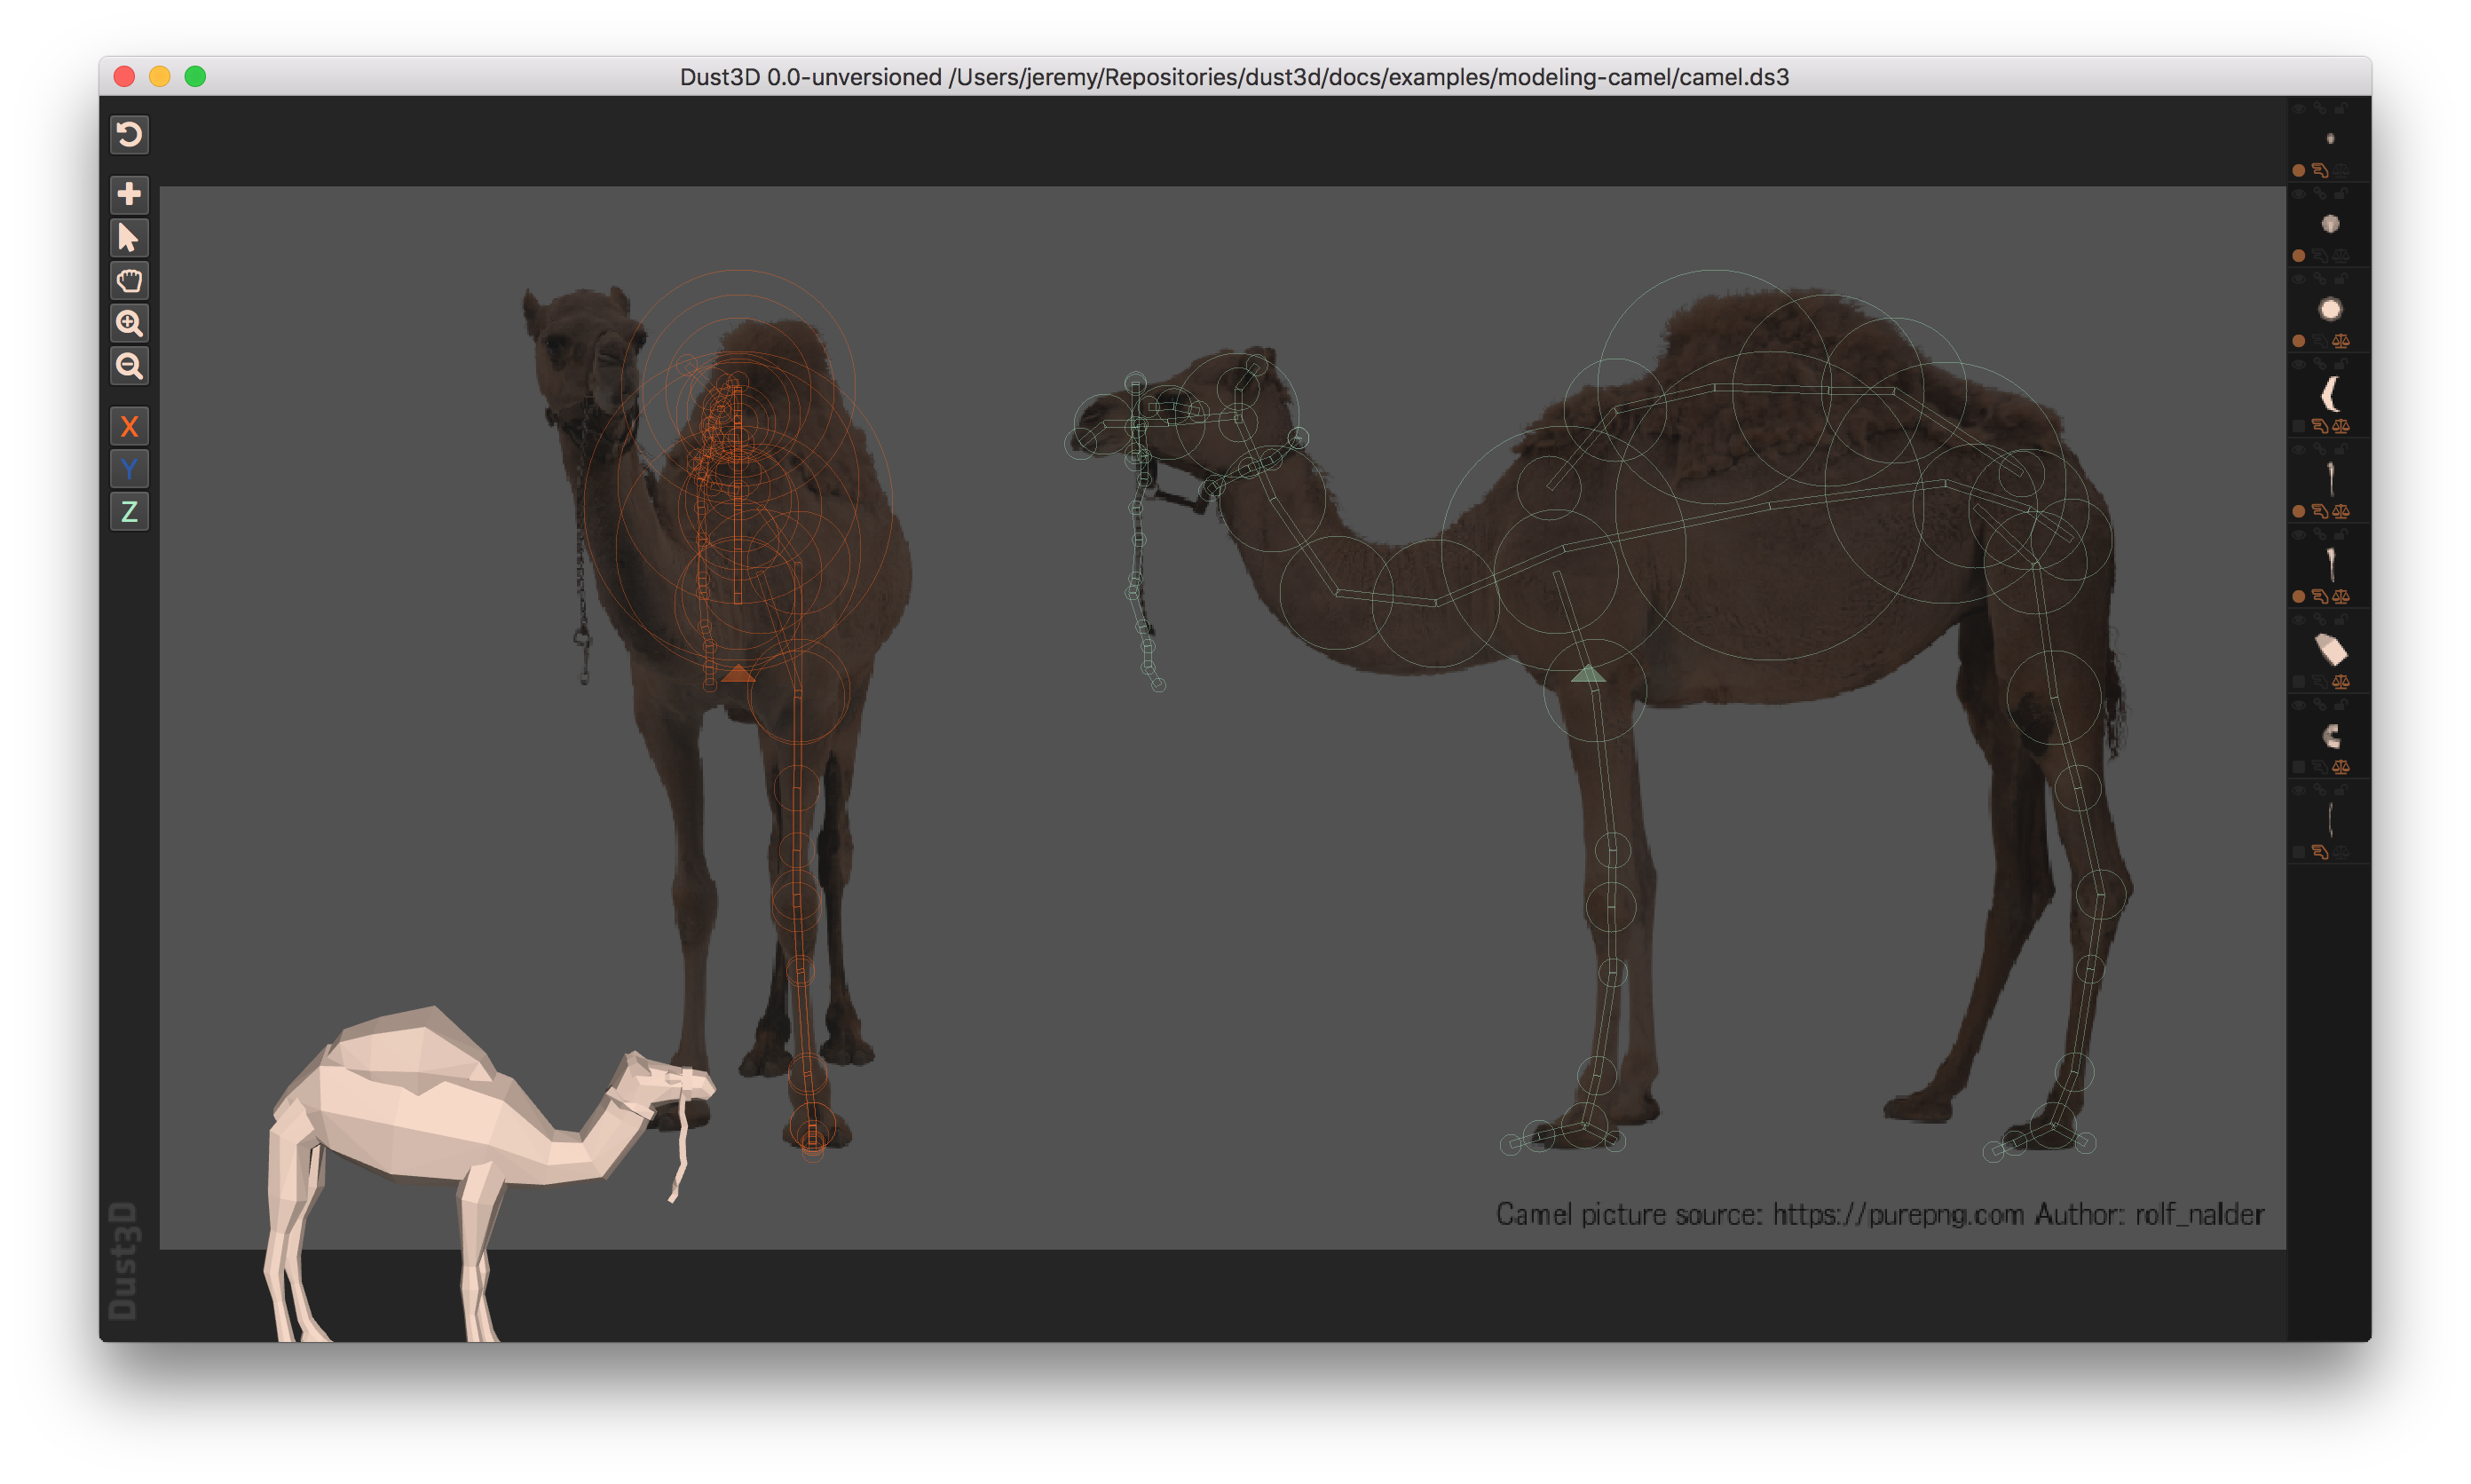 https://raw.githubusercontent.com/huxingyi/dust3d/master/docs/examples/modeling-camel/modeling-camel-dust3d-screenshot.png